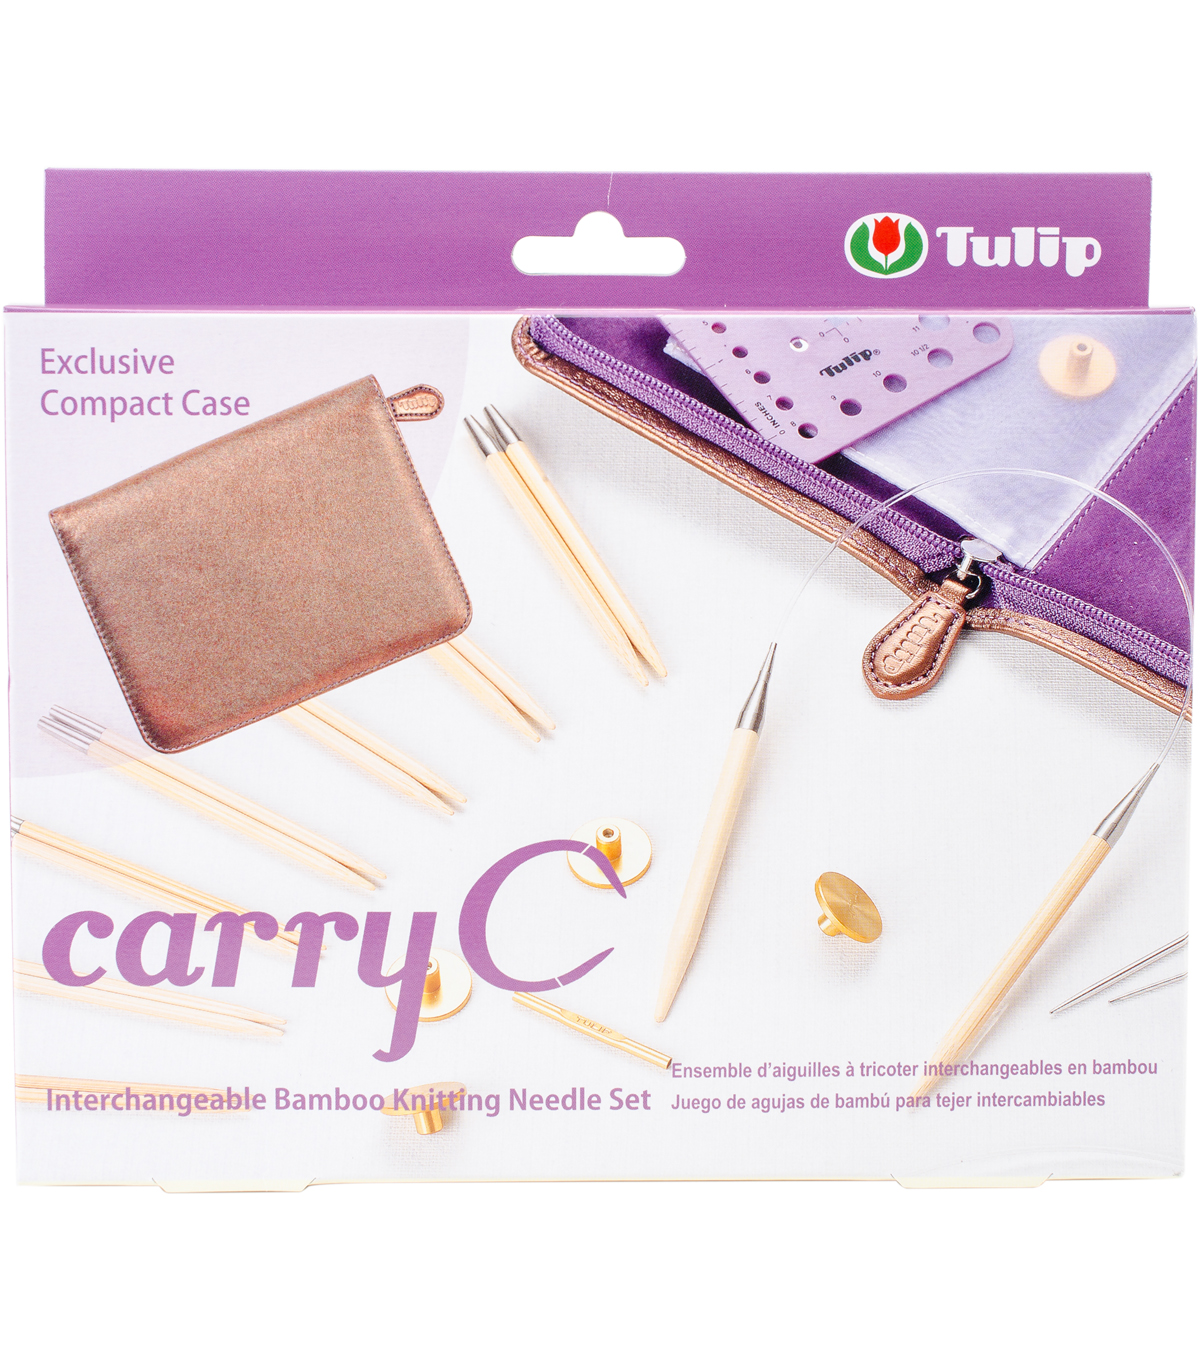 Carry C Interchangeable Bamboo Knitting Needle Set